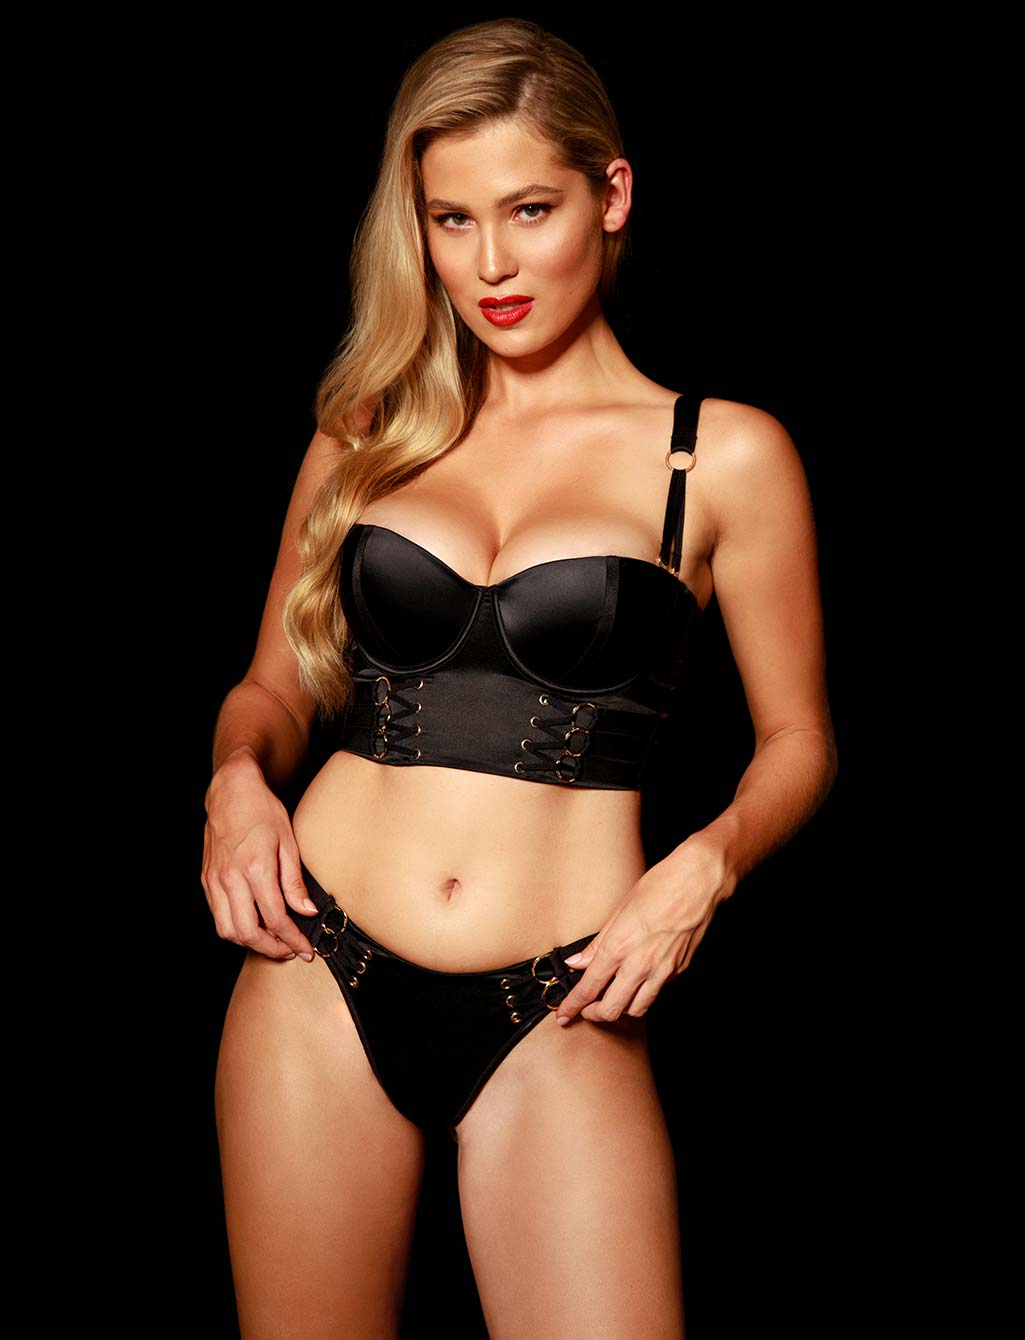 Stevie Lingerie Set | Shop  Lingerie Honey Birdette